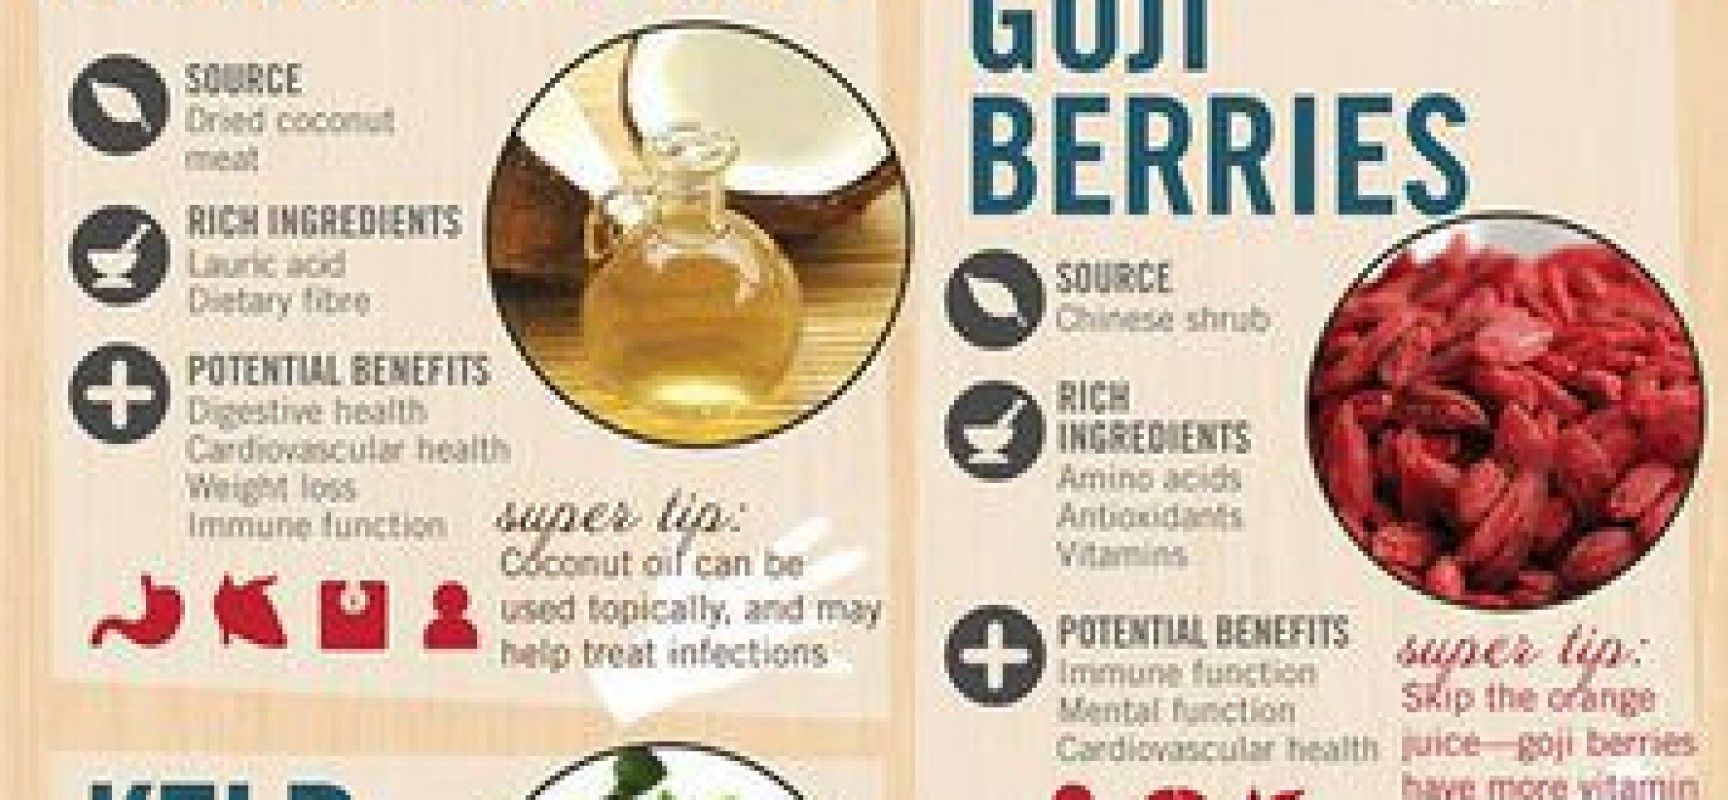 Energizing Foods for your Body and Mind